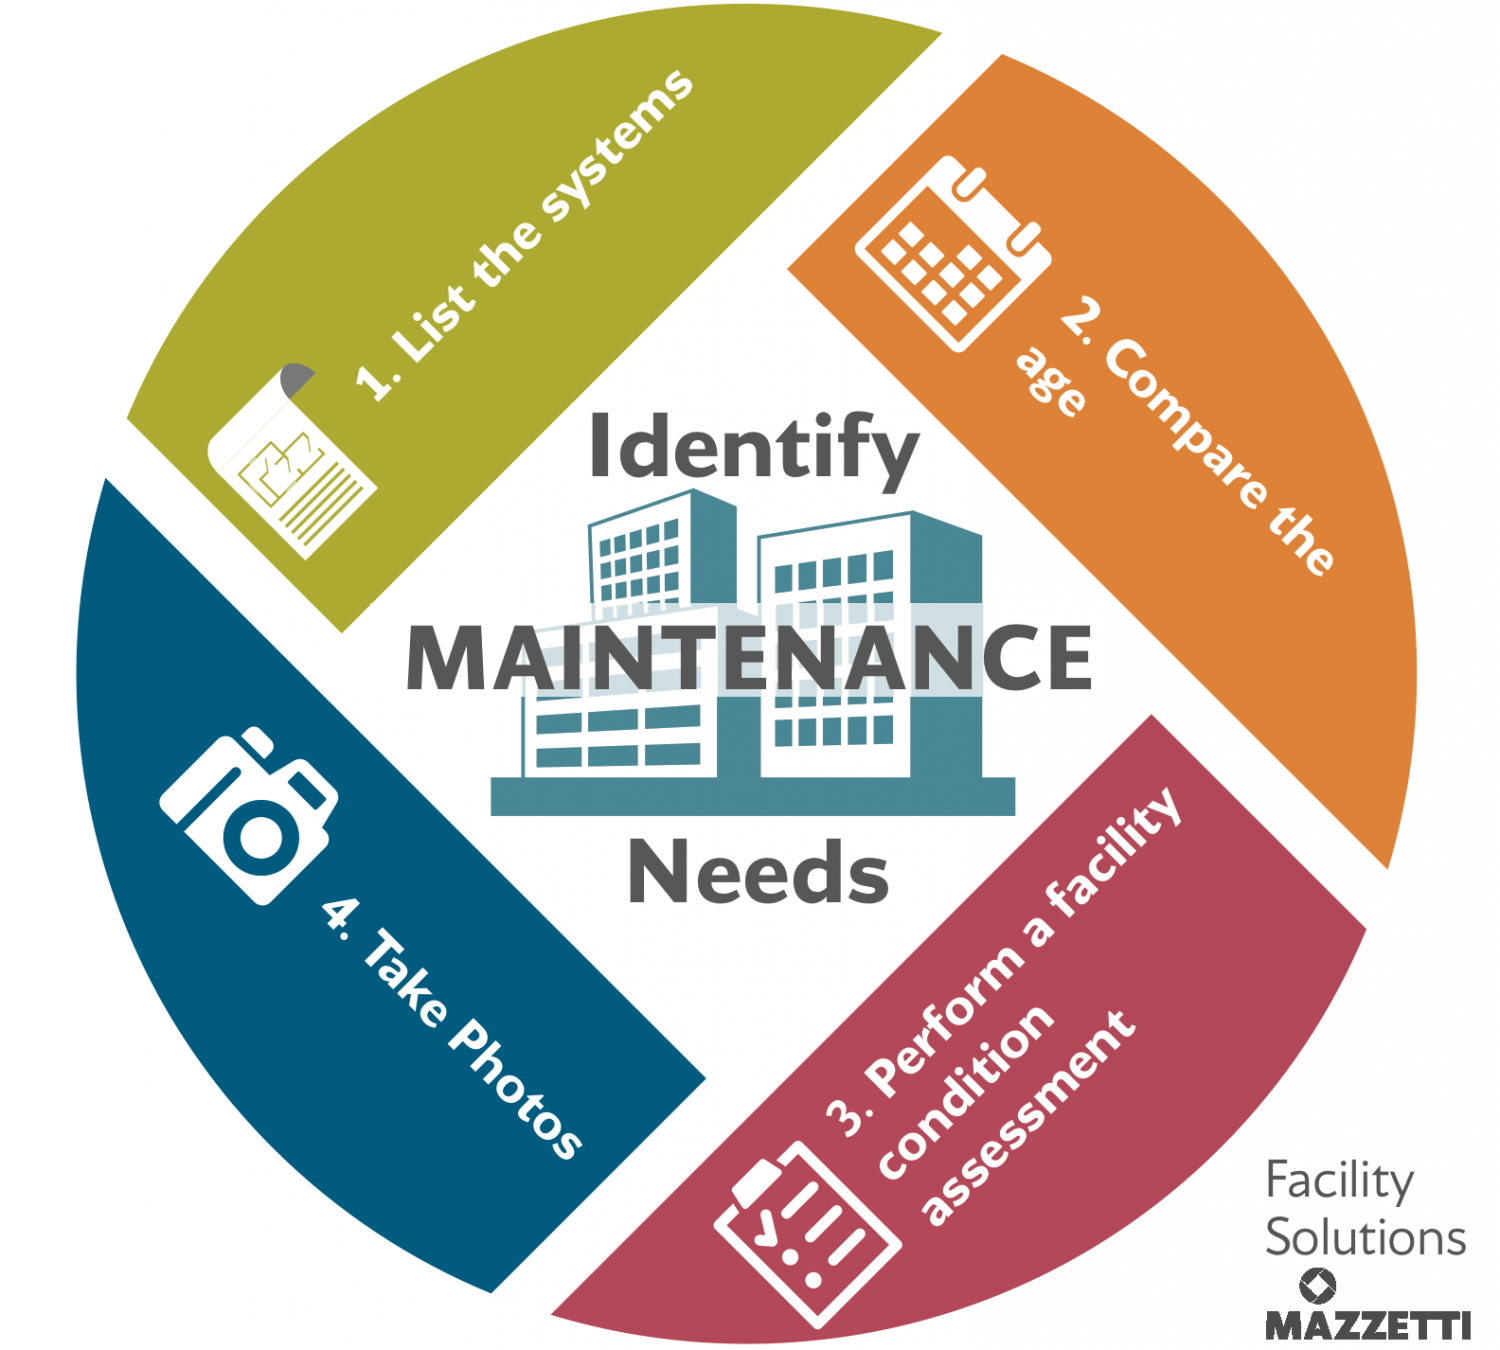 identify-needs-planned-maintenace